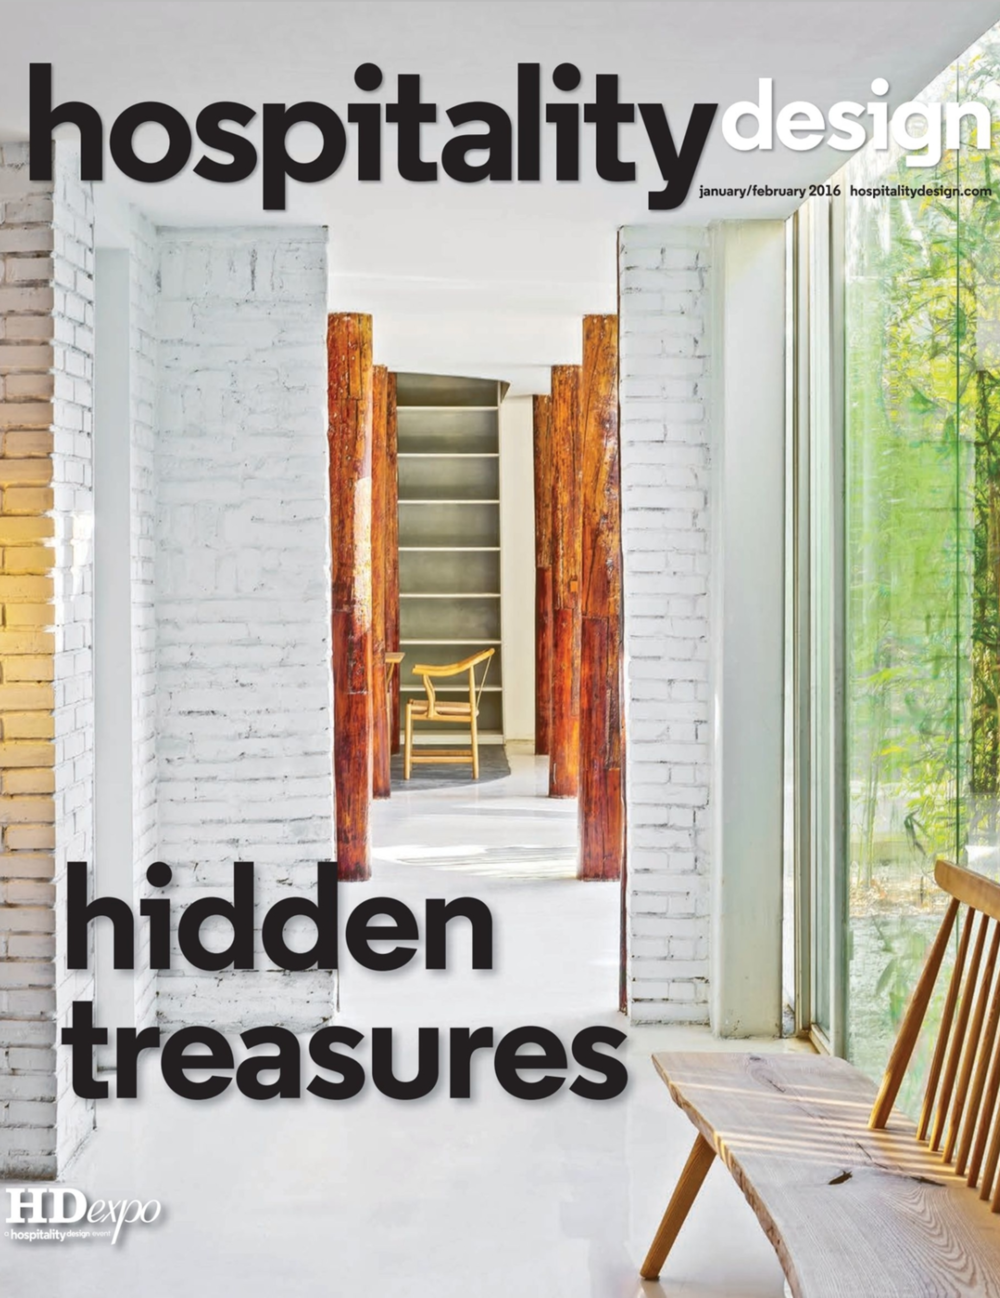 Hoapitality Design-Jan:Feb 2016 COVER.png